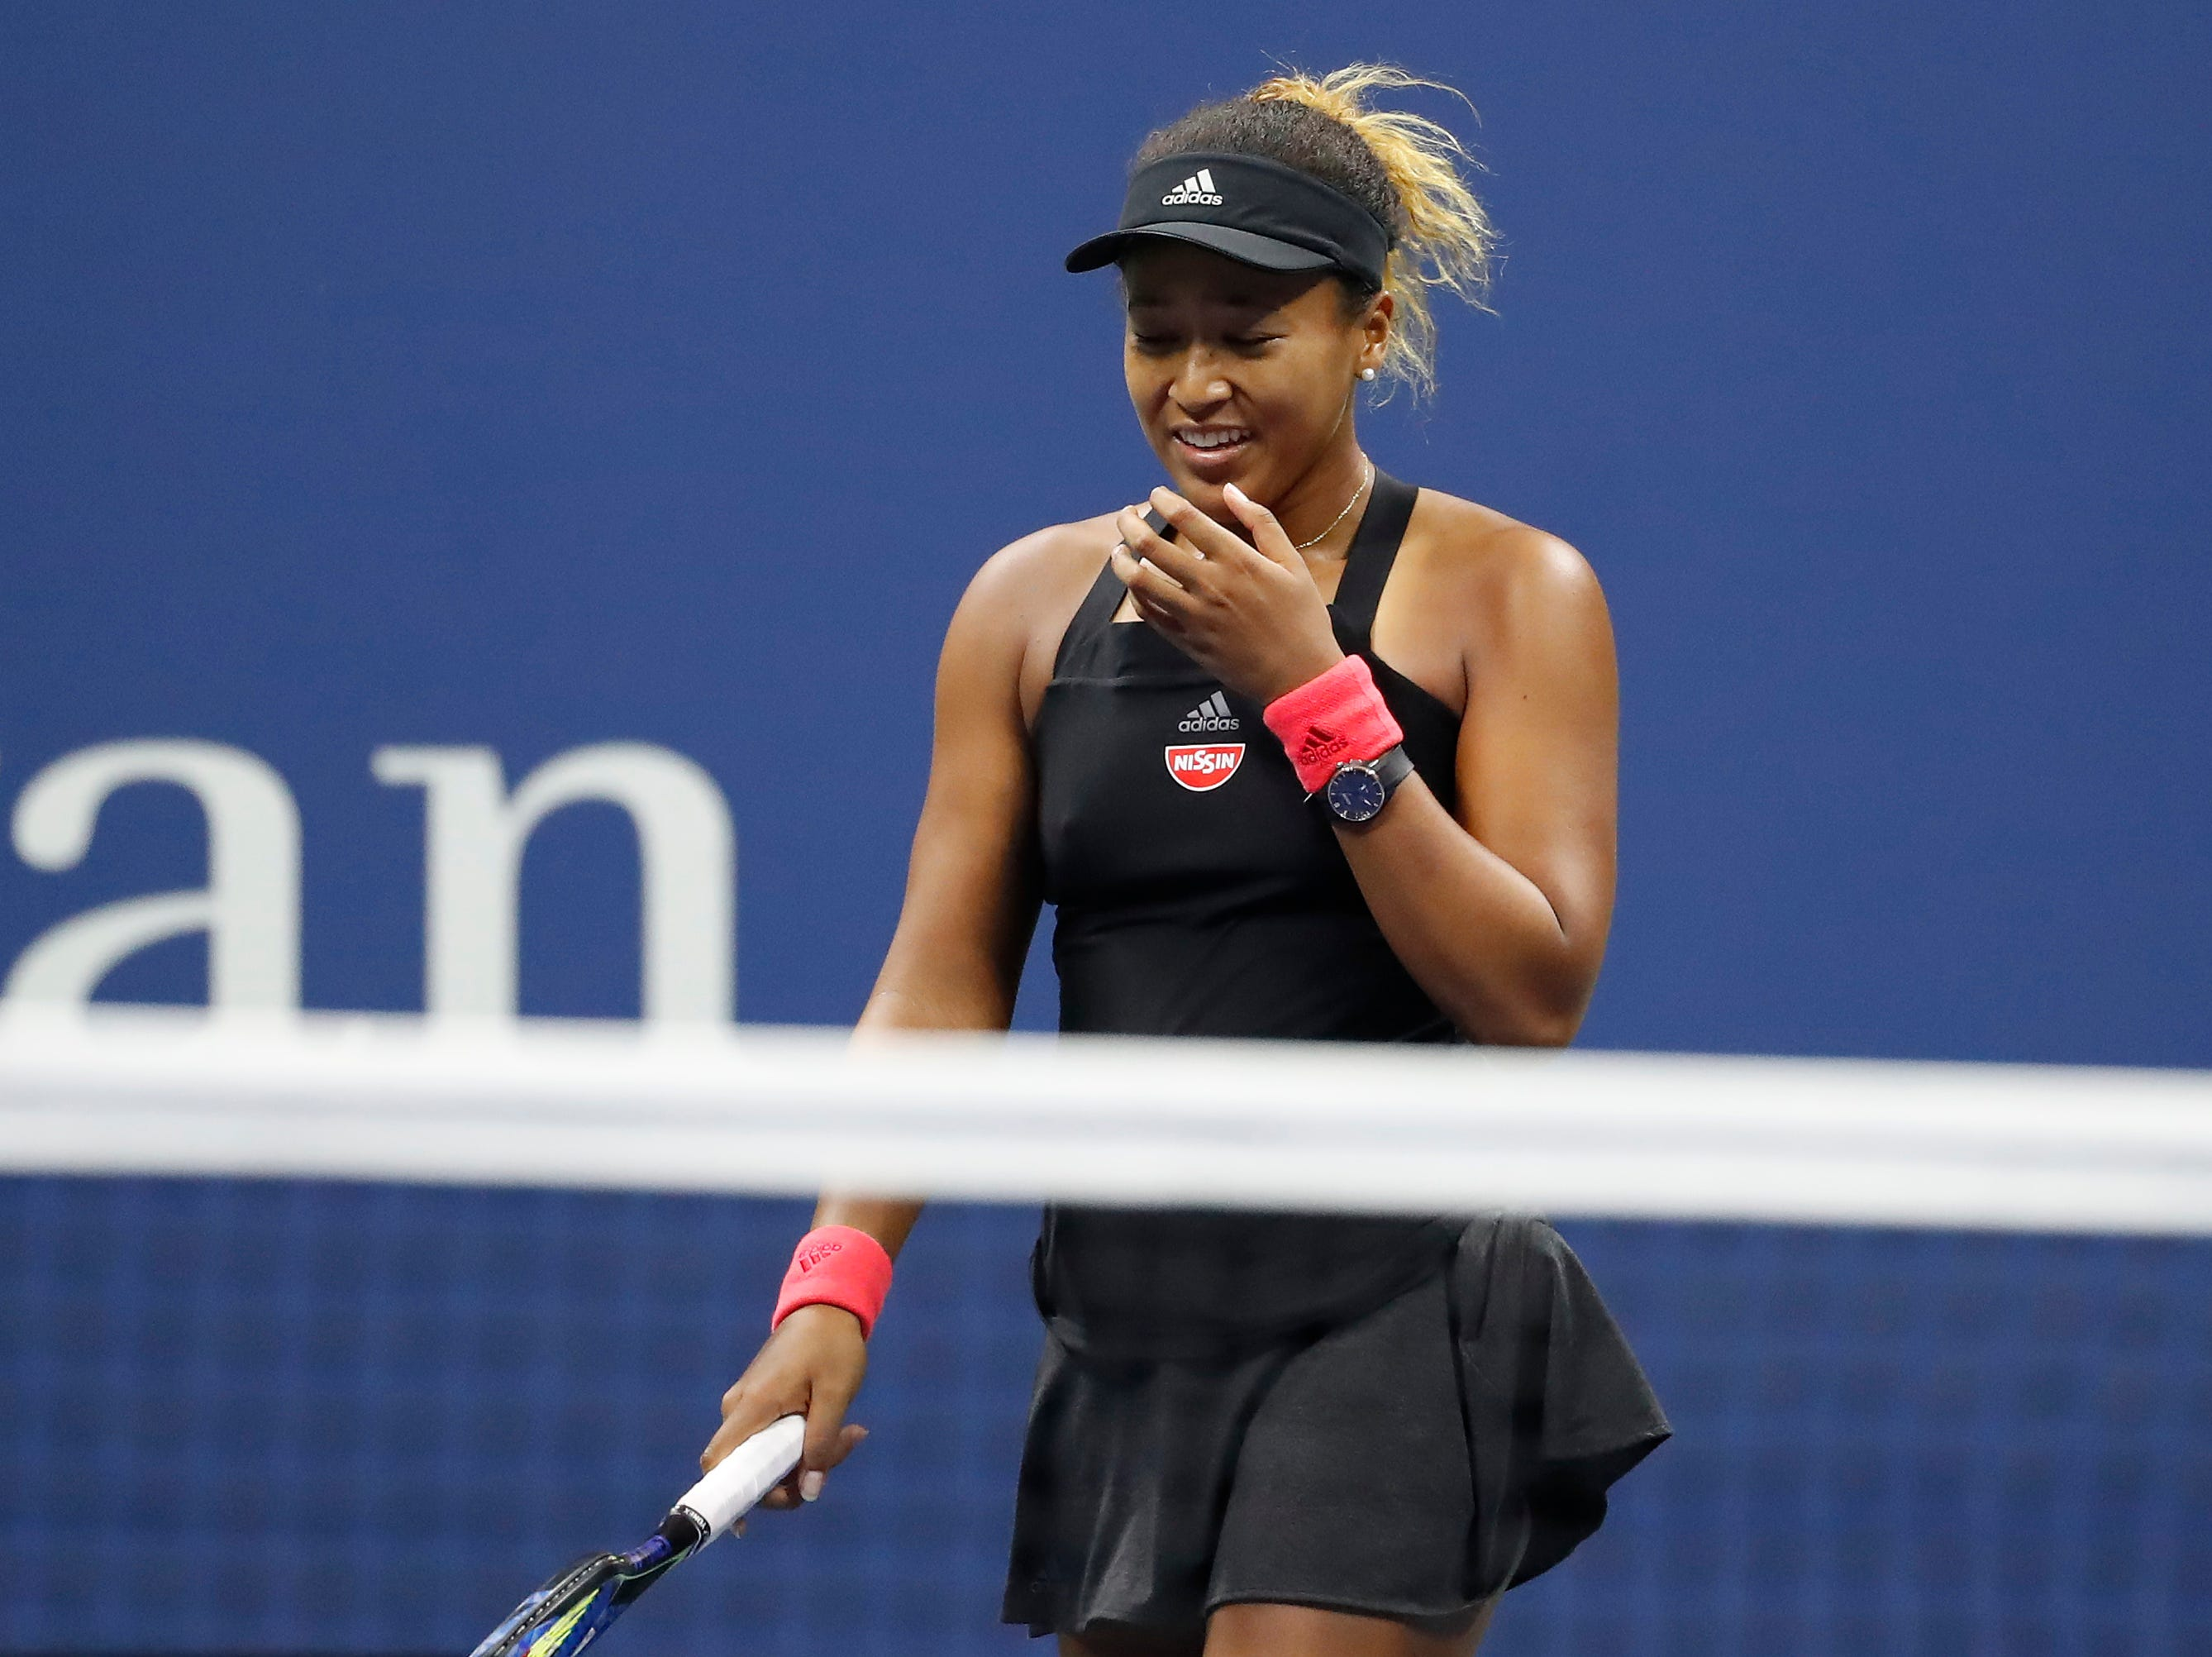 Naomi Osaka reacts after winning match point against Serena Williams. It was her first US Open title.